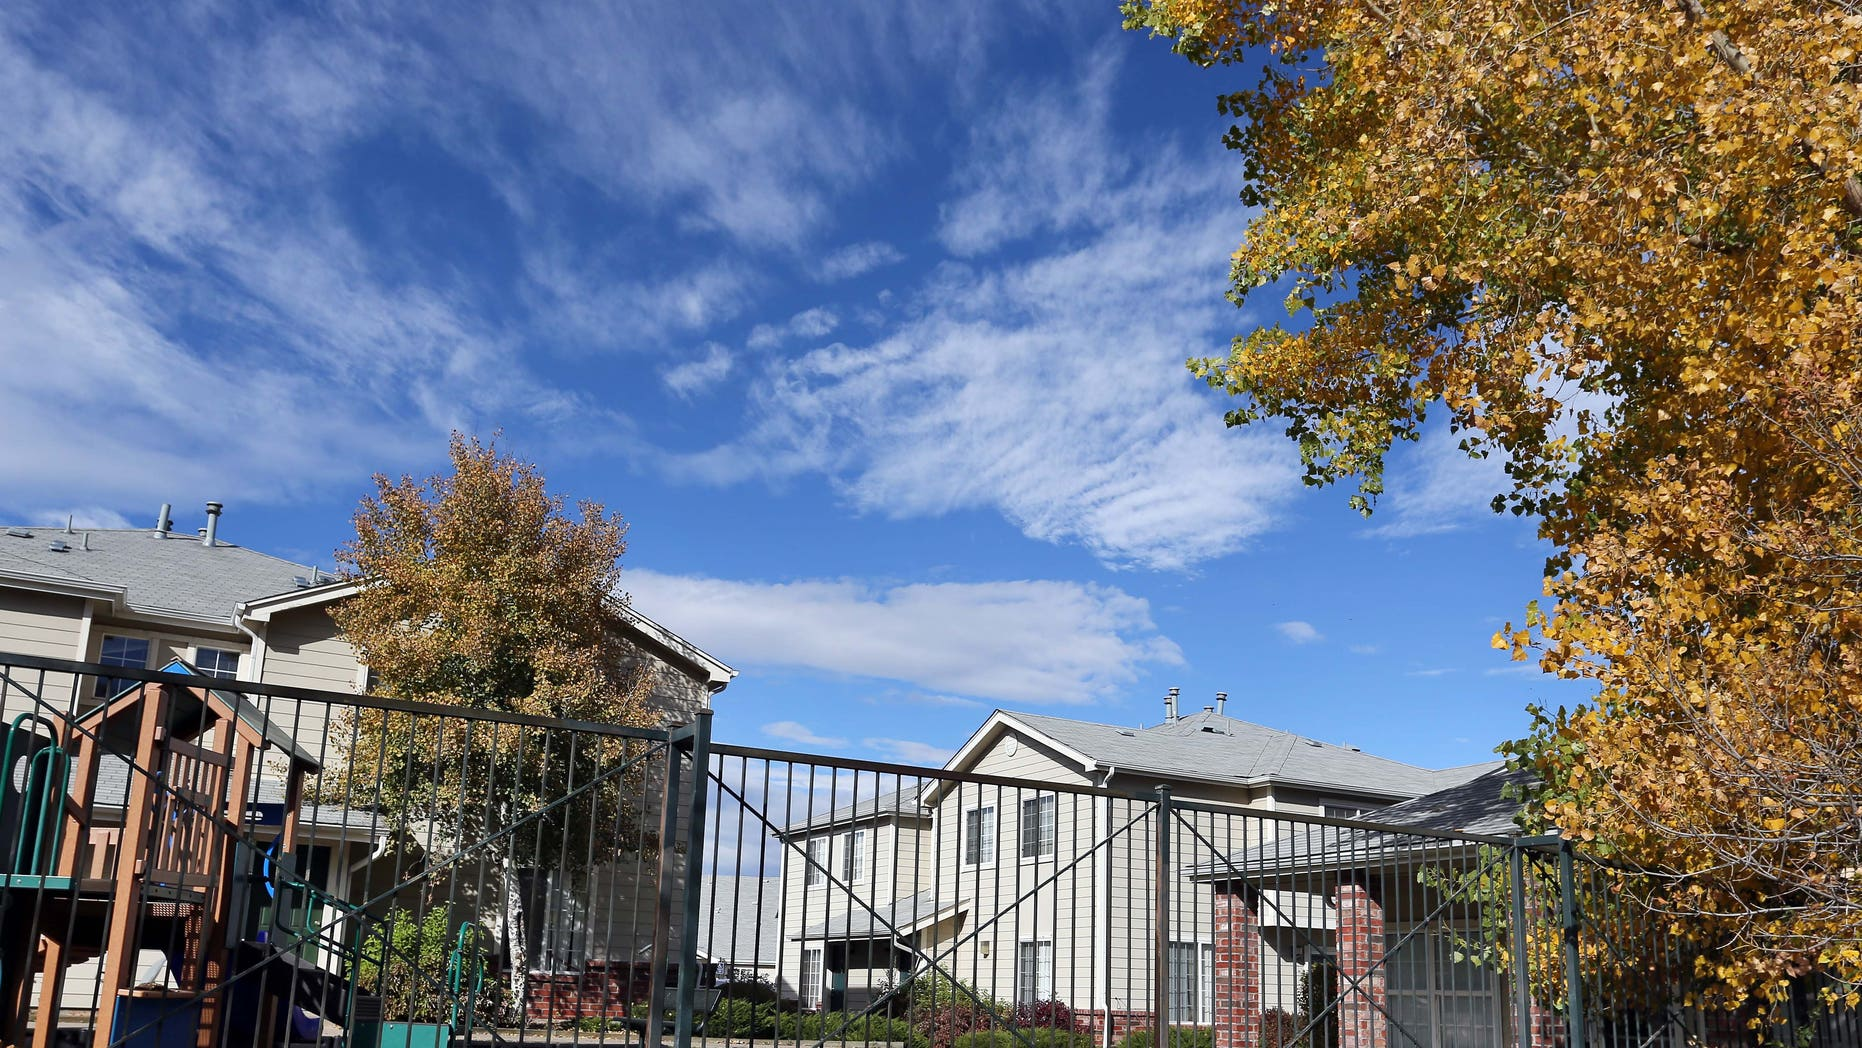 Oct. 22, 2014,: This photo shows the apartment complex in Aurora, Colo., which police say is the home of one of the three teenage girls who, according to U.S. authorities, were en route to join the Islamic State group in Syria when they were stopped at an airport in Germany. The two sisters, ages 17 and 15, and their 16-year-old friend have been reunited with their families in Colorado, according to an FBI spokeswoman. (AP/Brennan Linsley)